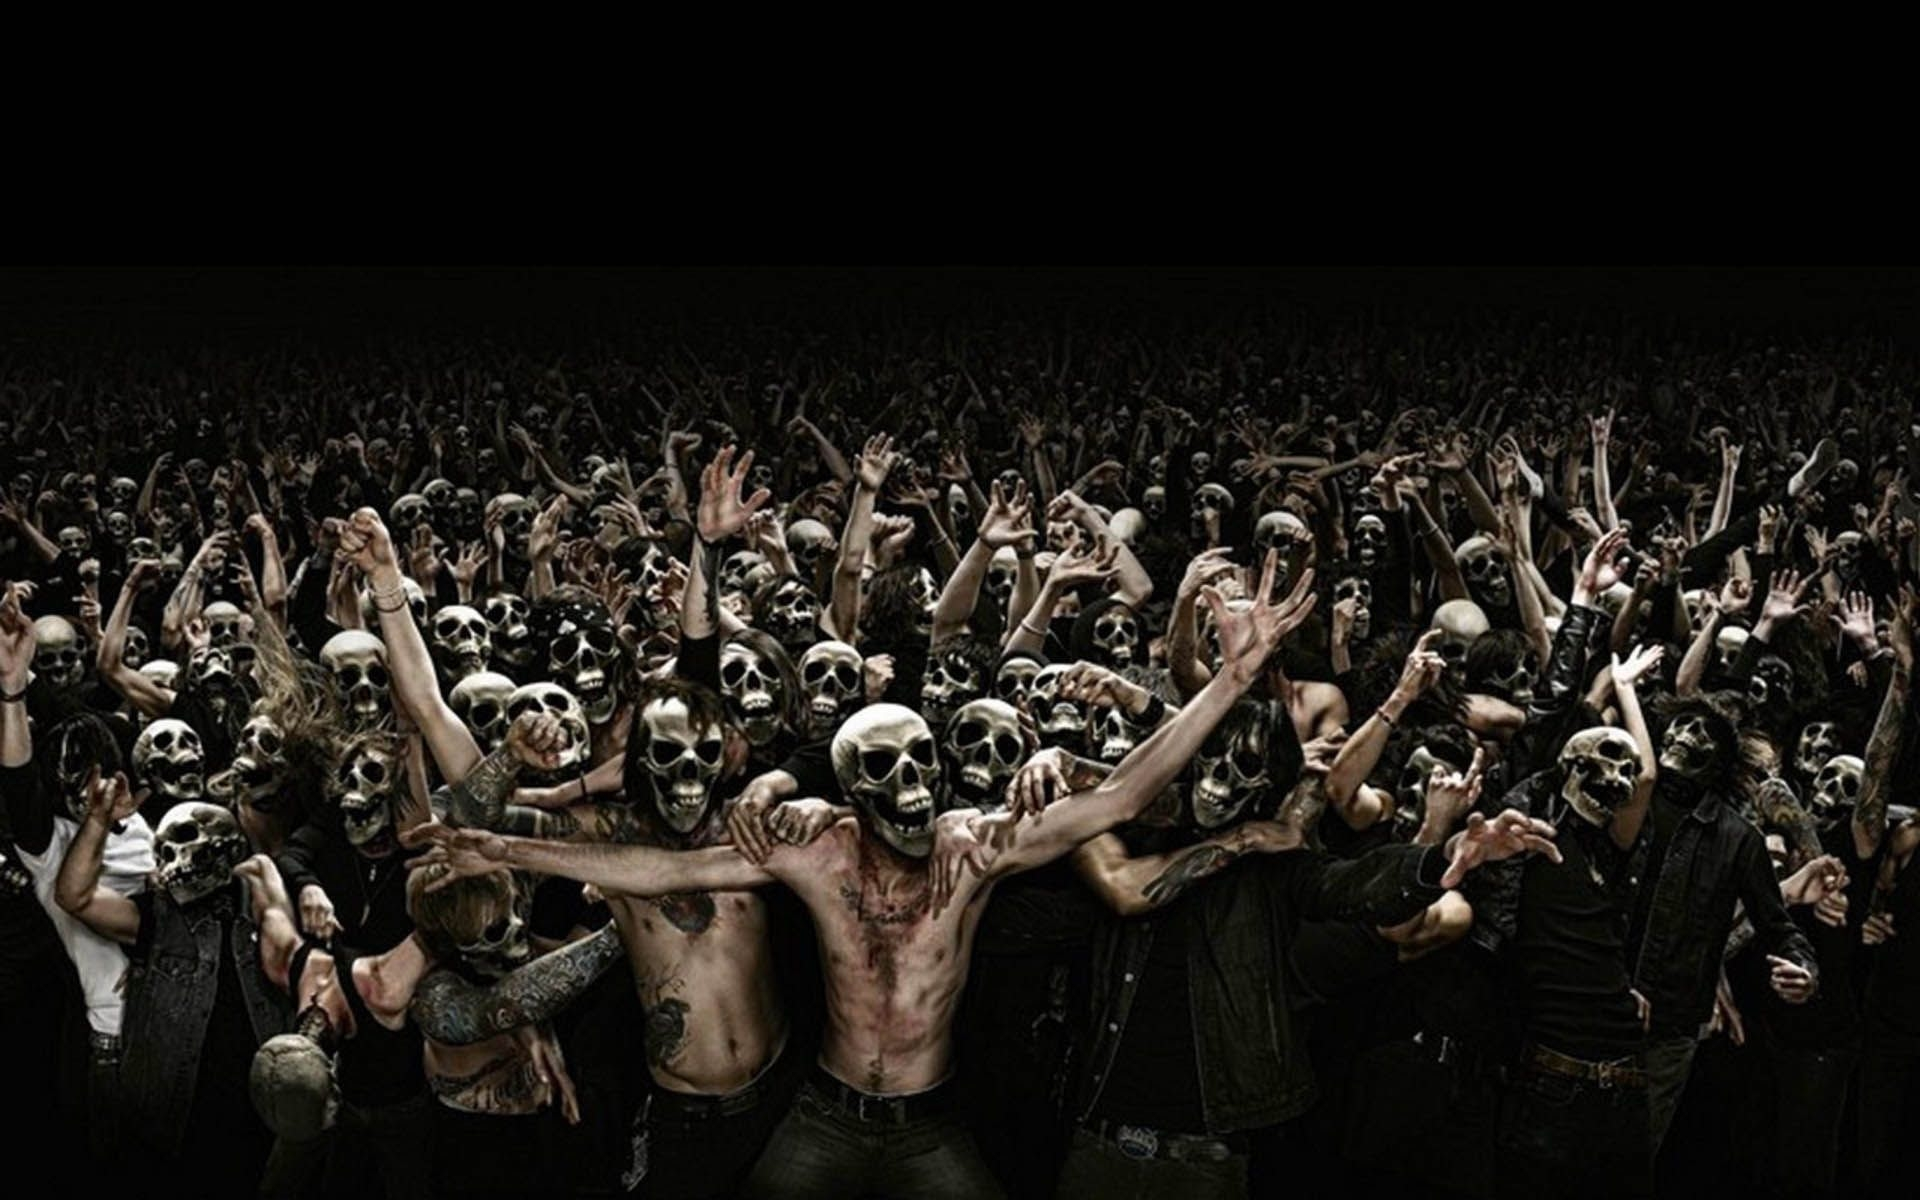 Crowd Of Skull Faces Pictures Photos And Images For Facebook